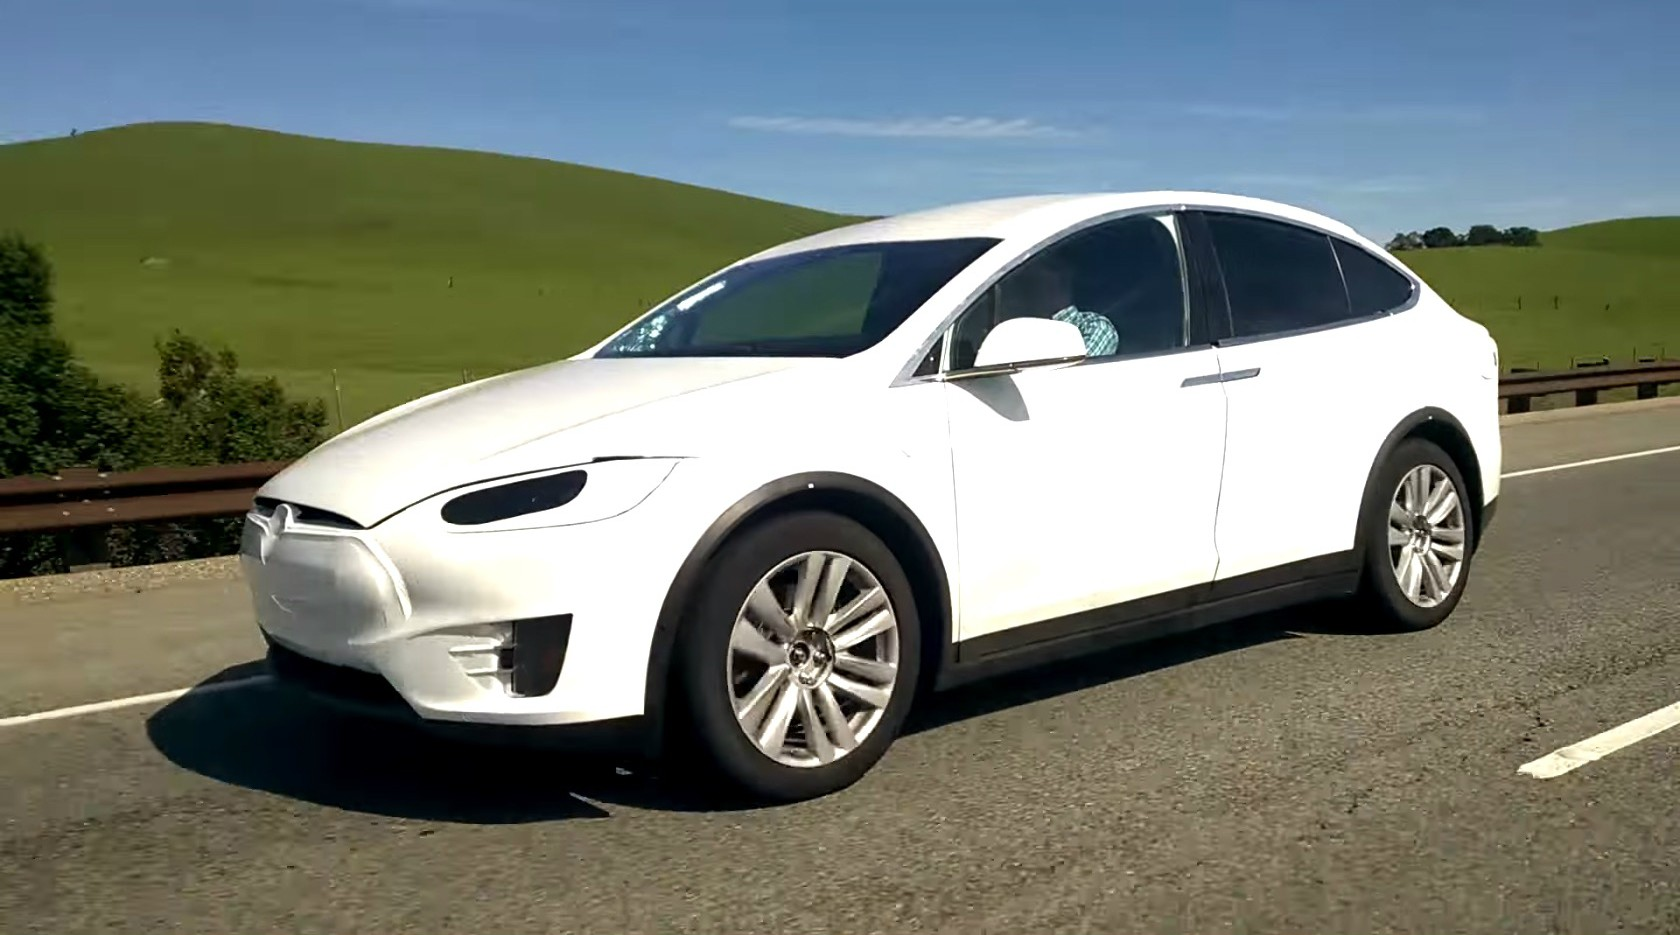 2016 tesla model x spied on video looks ready for production autoevolution. Black Bedroom Furniture Sets. Home Design Ideas